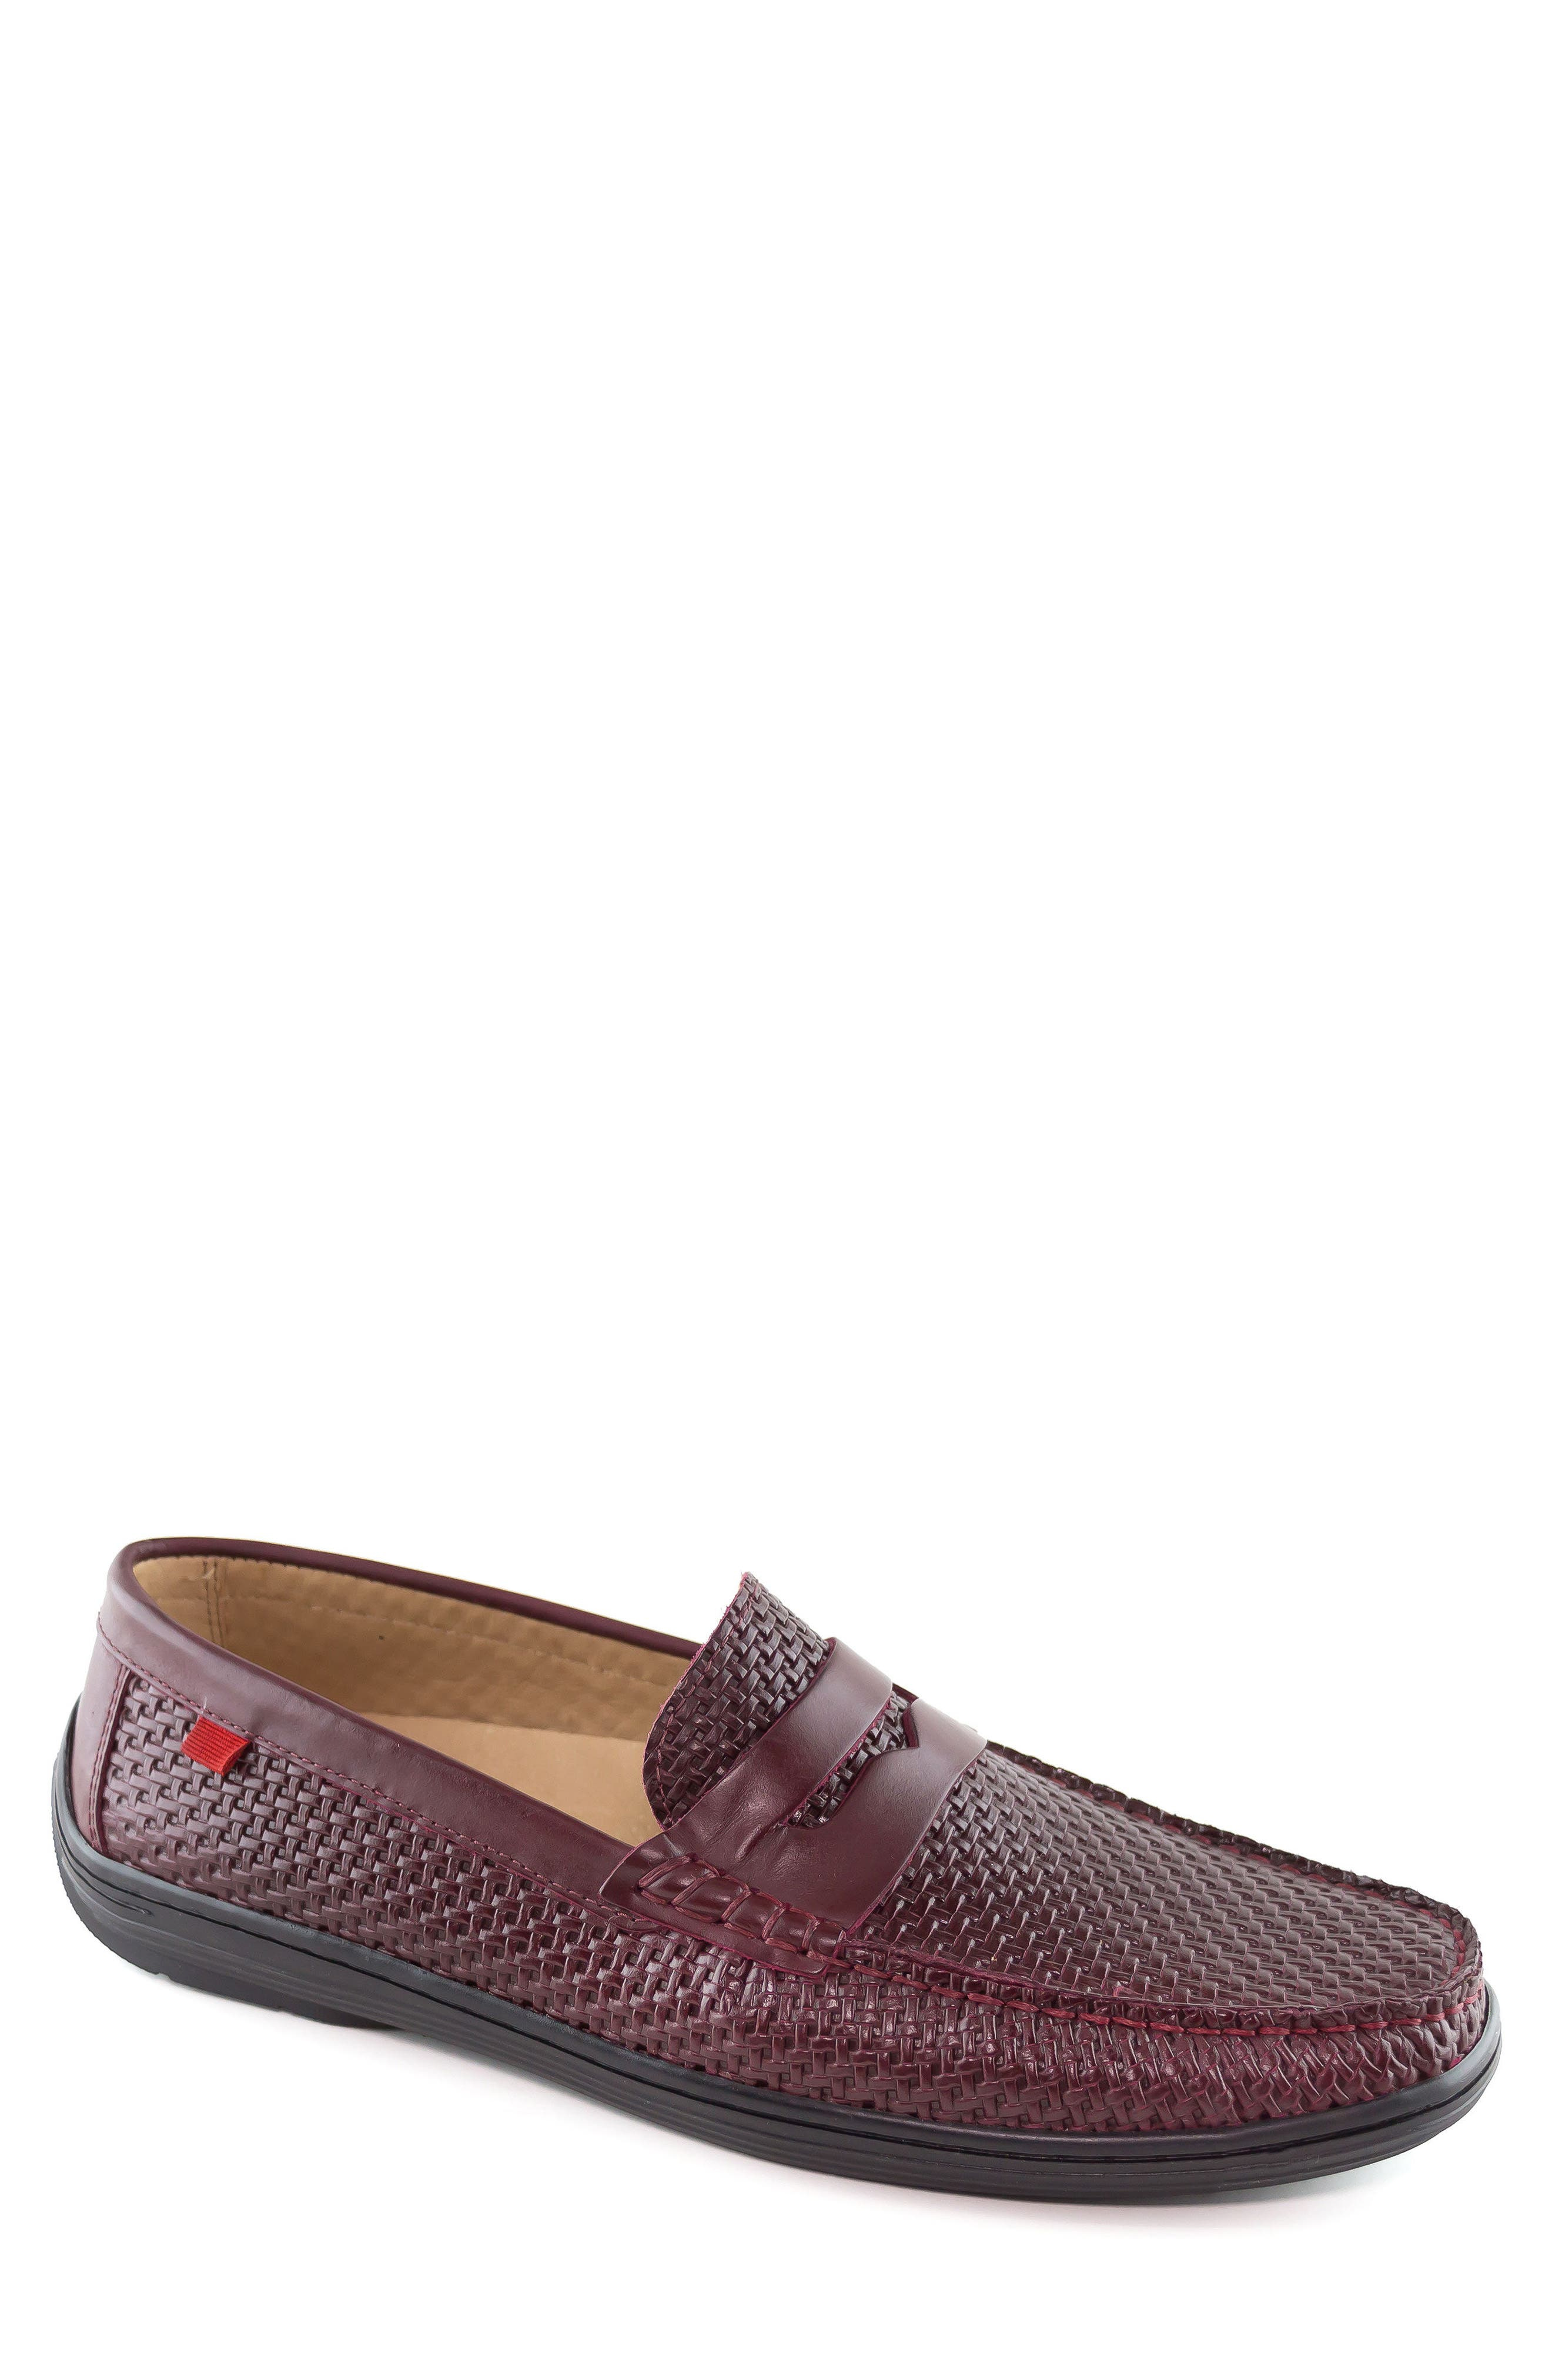 Atlantic Penny Loafer,                             Main thumbnail 7, color,